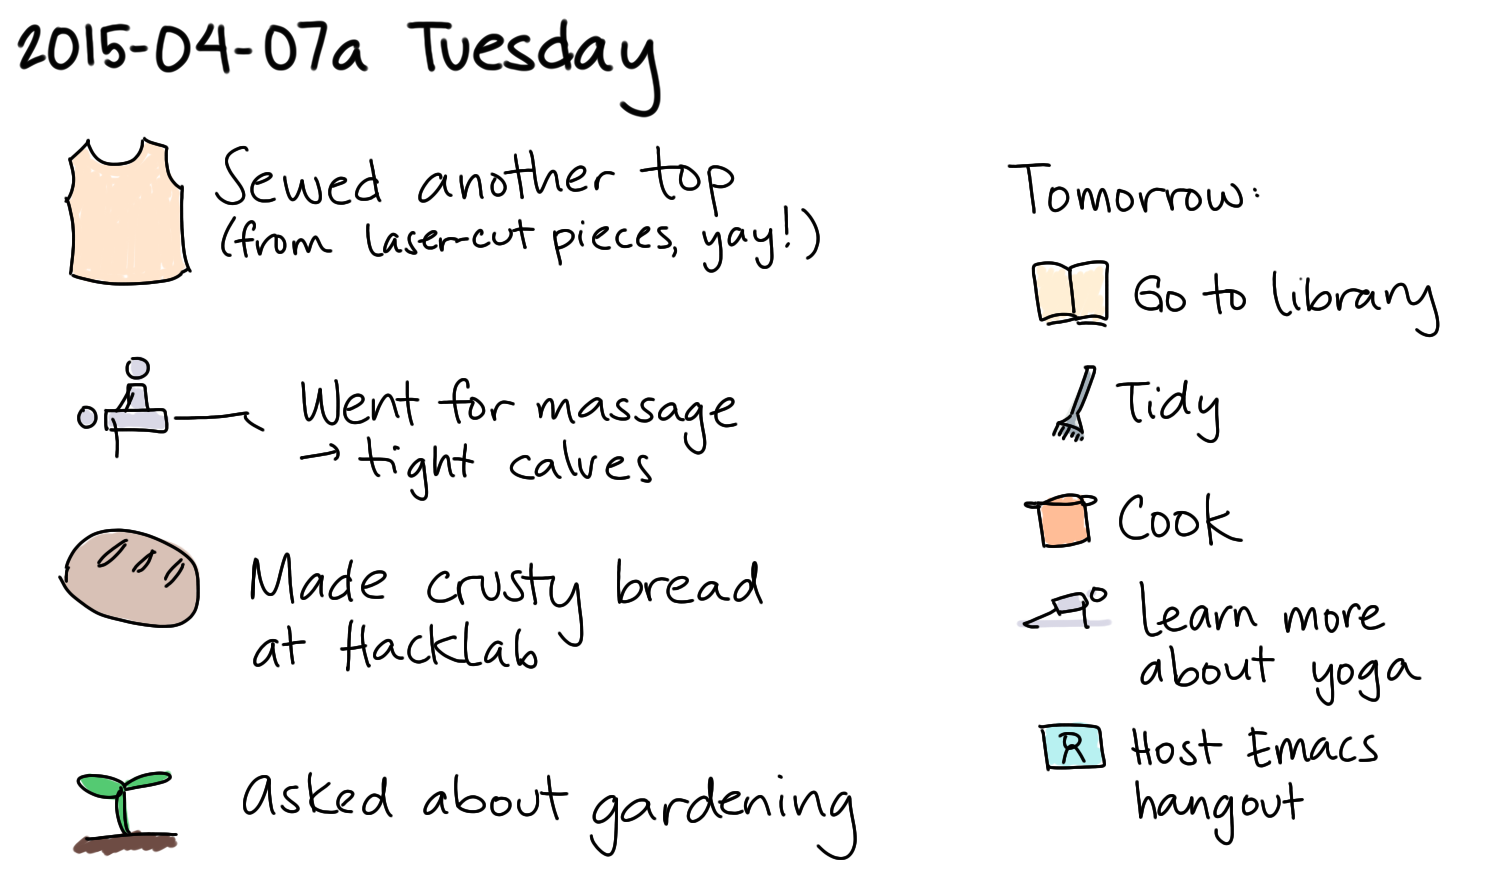 2015-04-07a Tuesday -- index card #journal.png